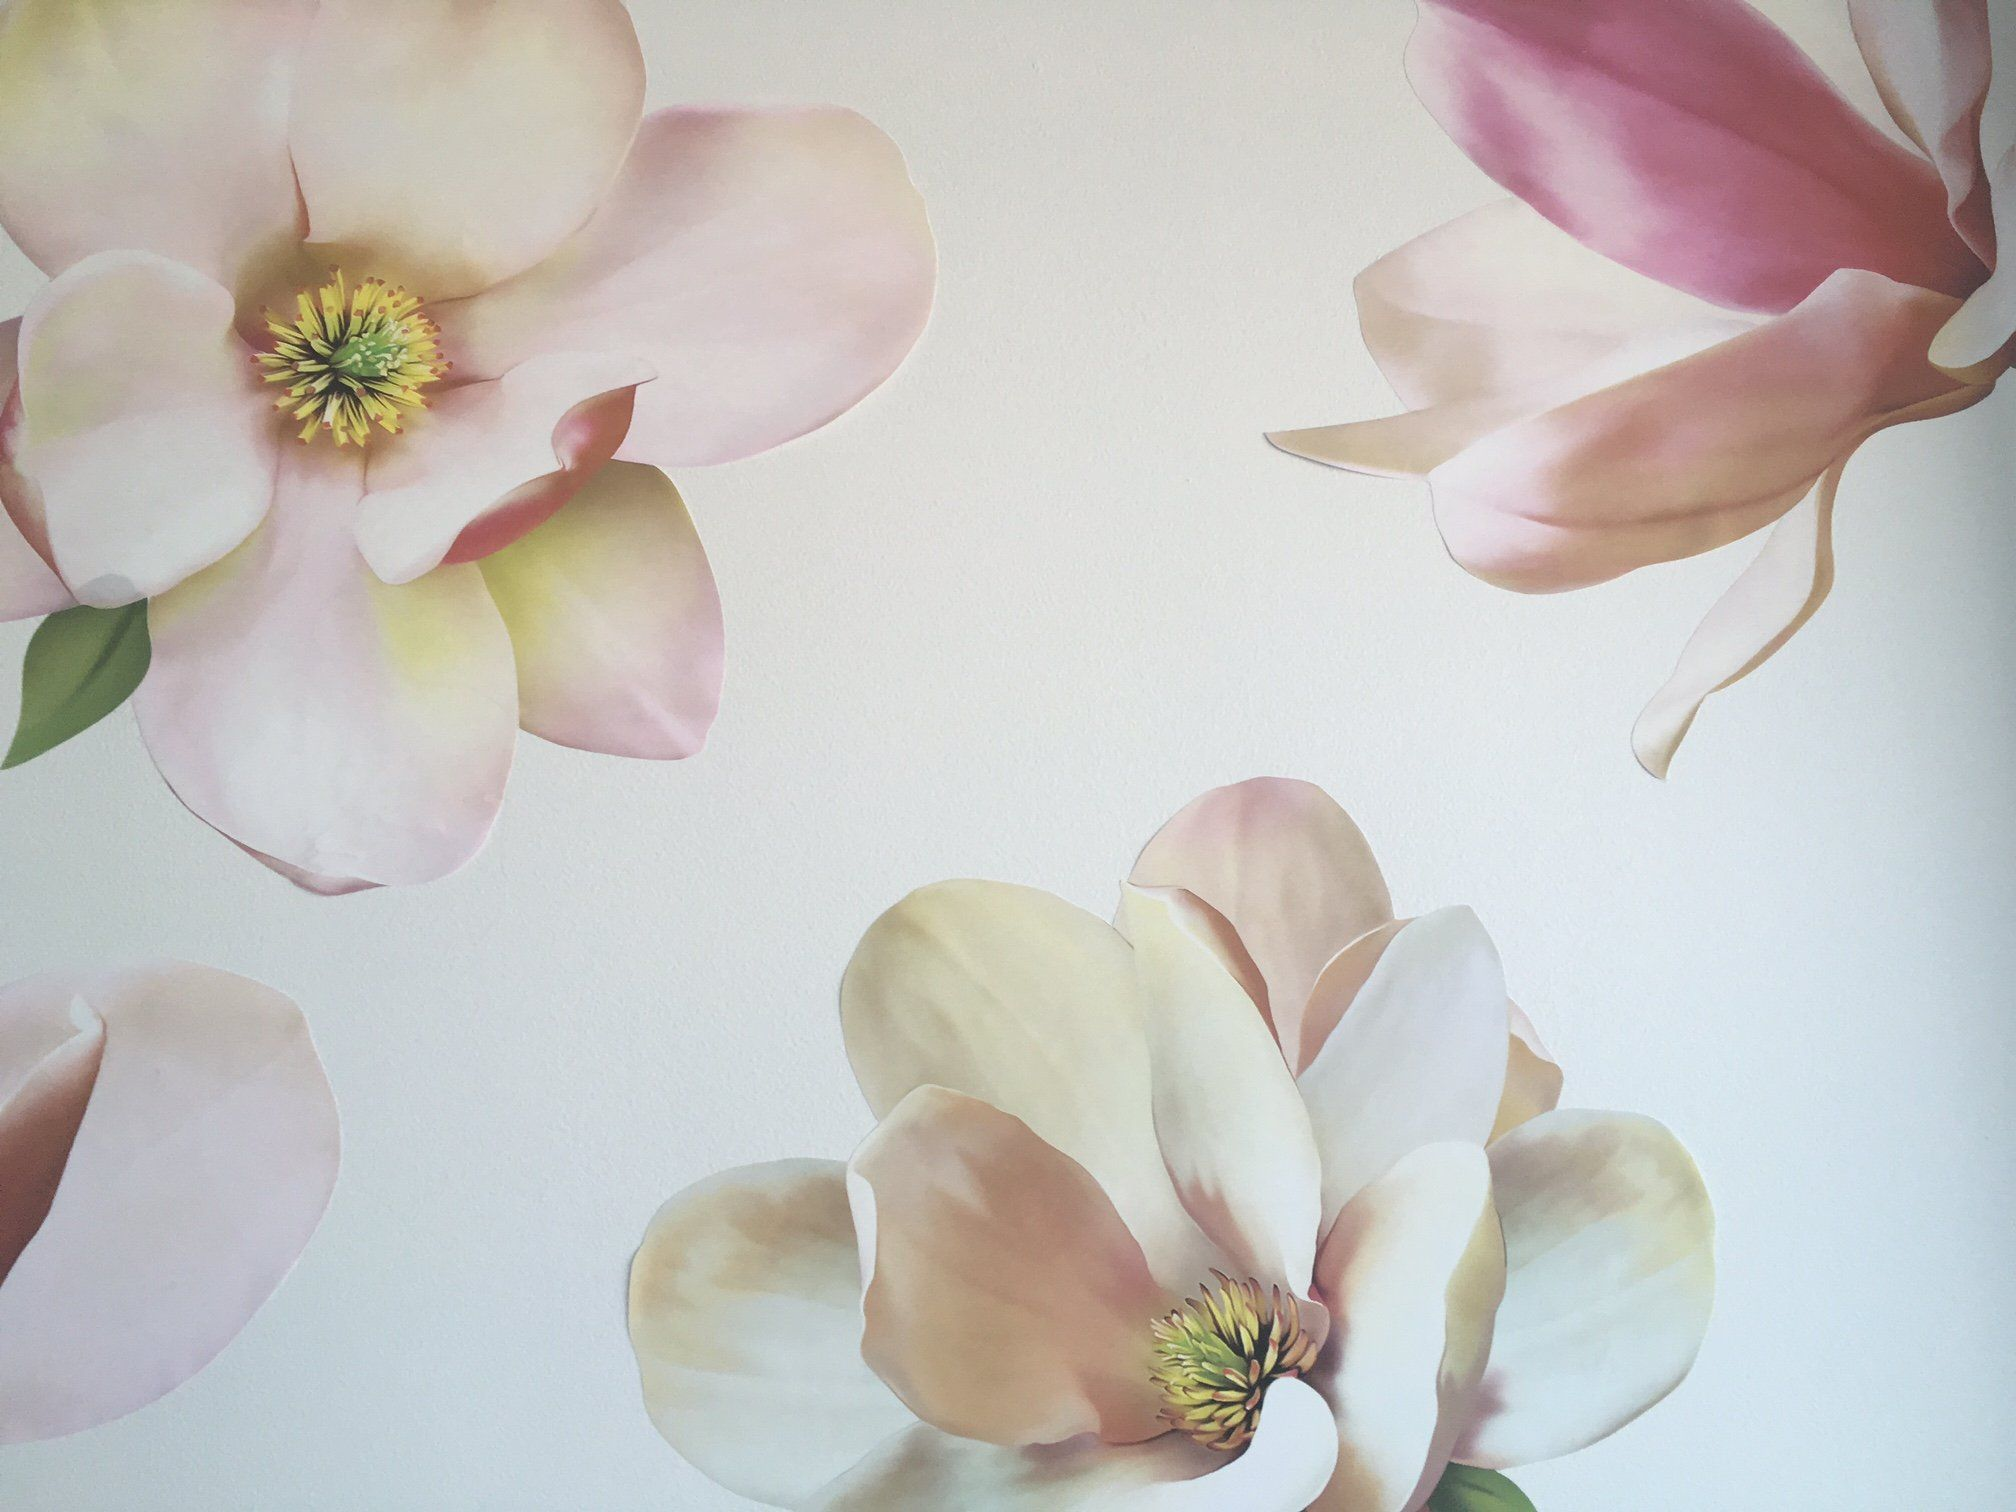 Large Magnolia Decals Flower Wall Decals Eco Friendly Flower Wall Stickers Wall Dressed Up Flower Wall Decals Flower Wall Stickers Magnolia Nursery Decor